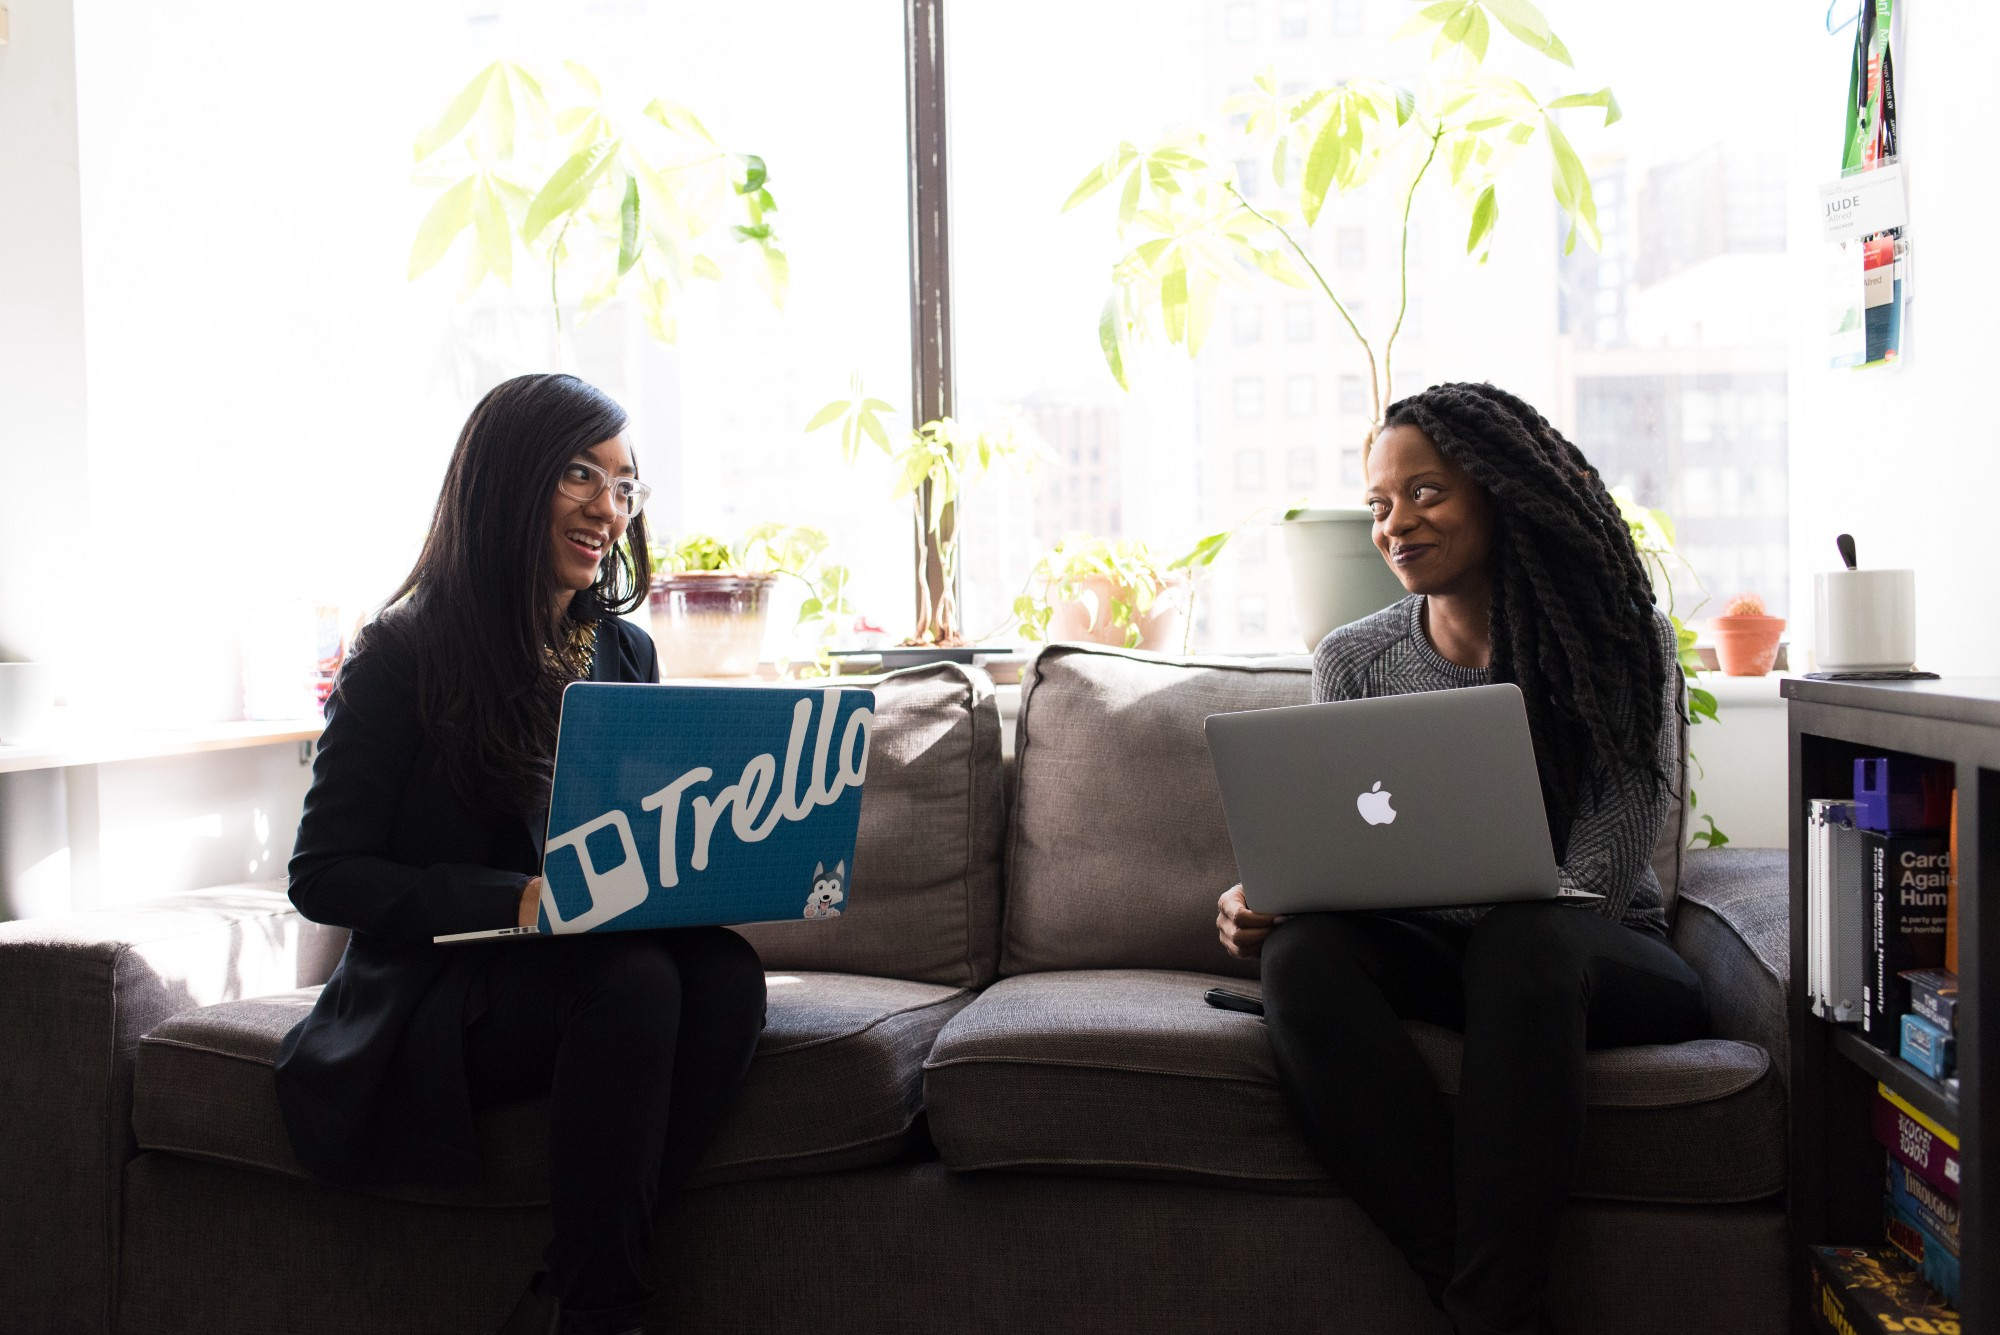 Two women of color smile at each other with open laptops.